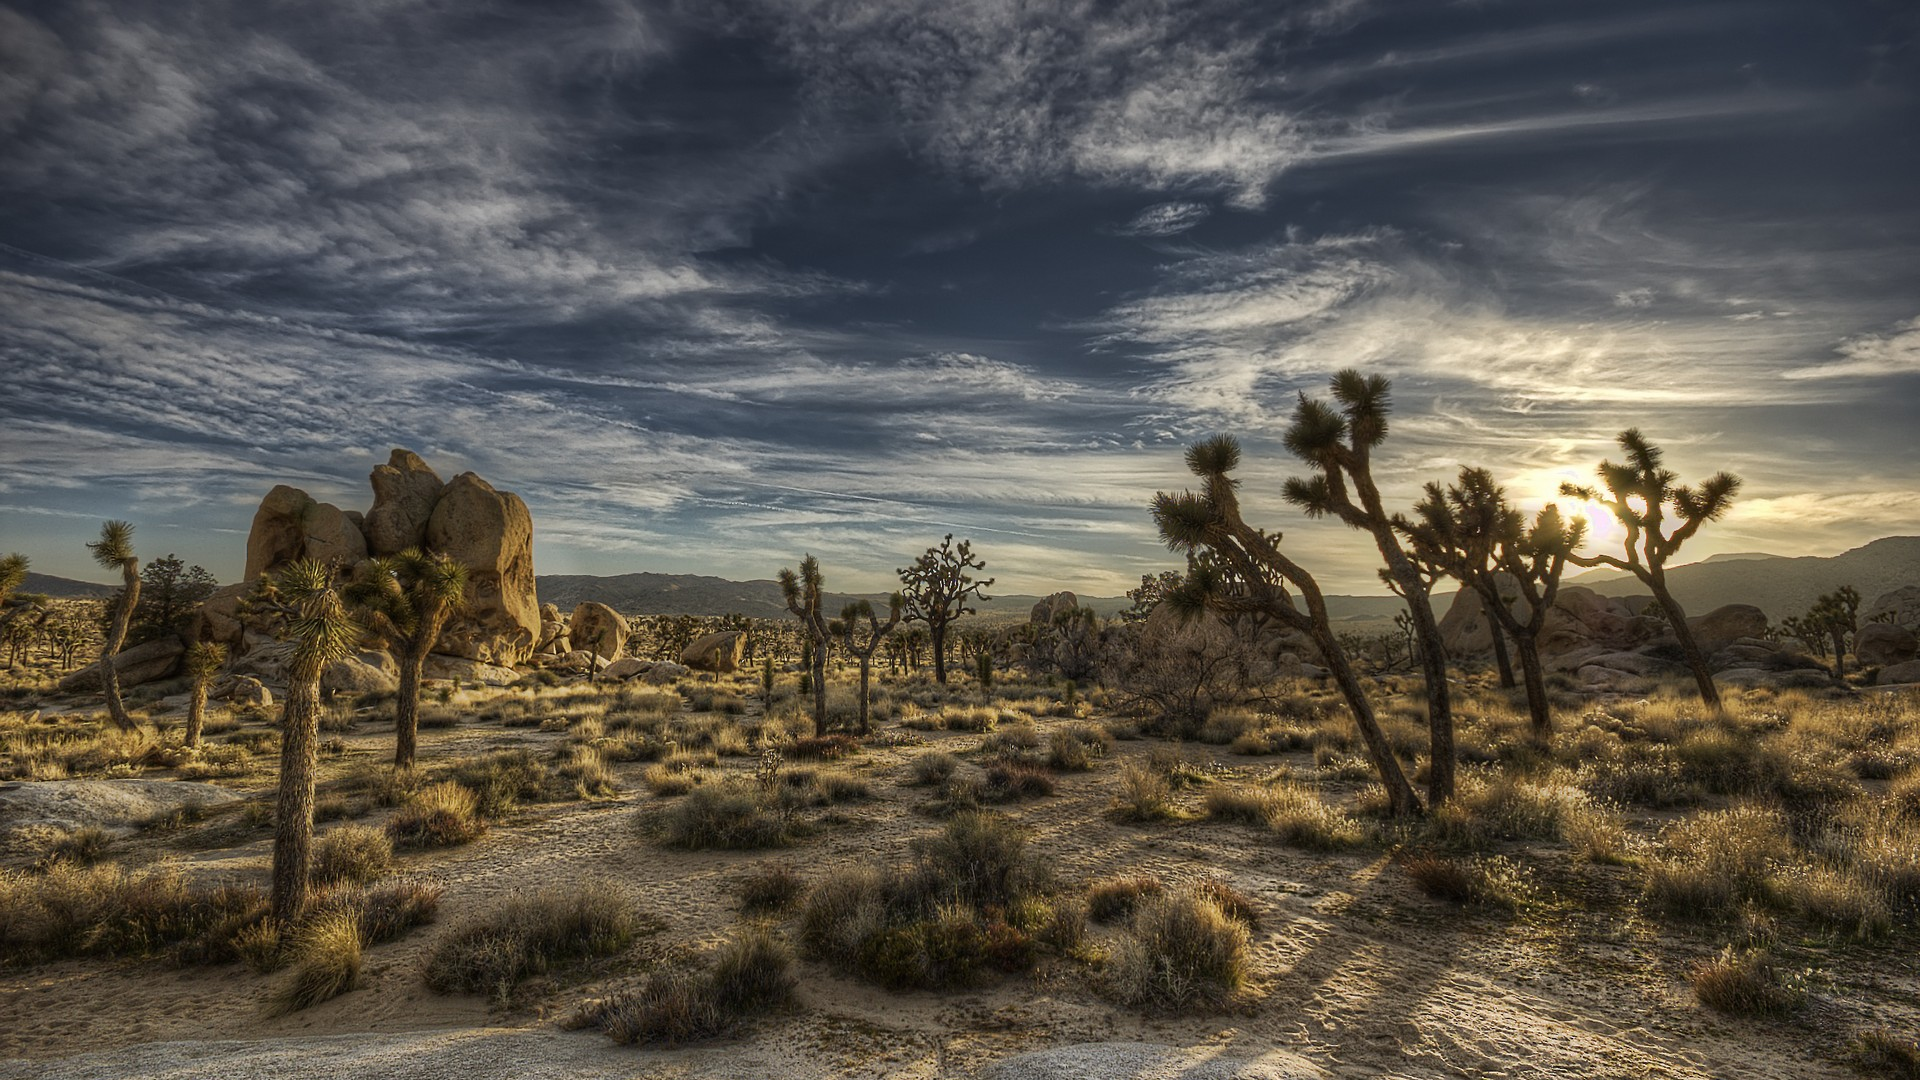 cactus-desert-cloud-california-1920x1080-wallpaper-wp36011995